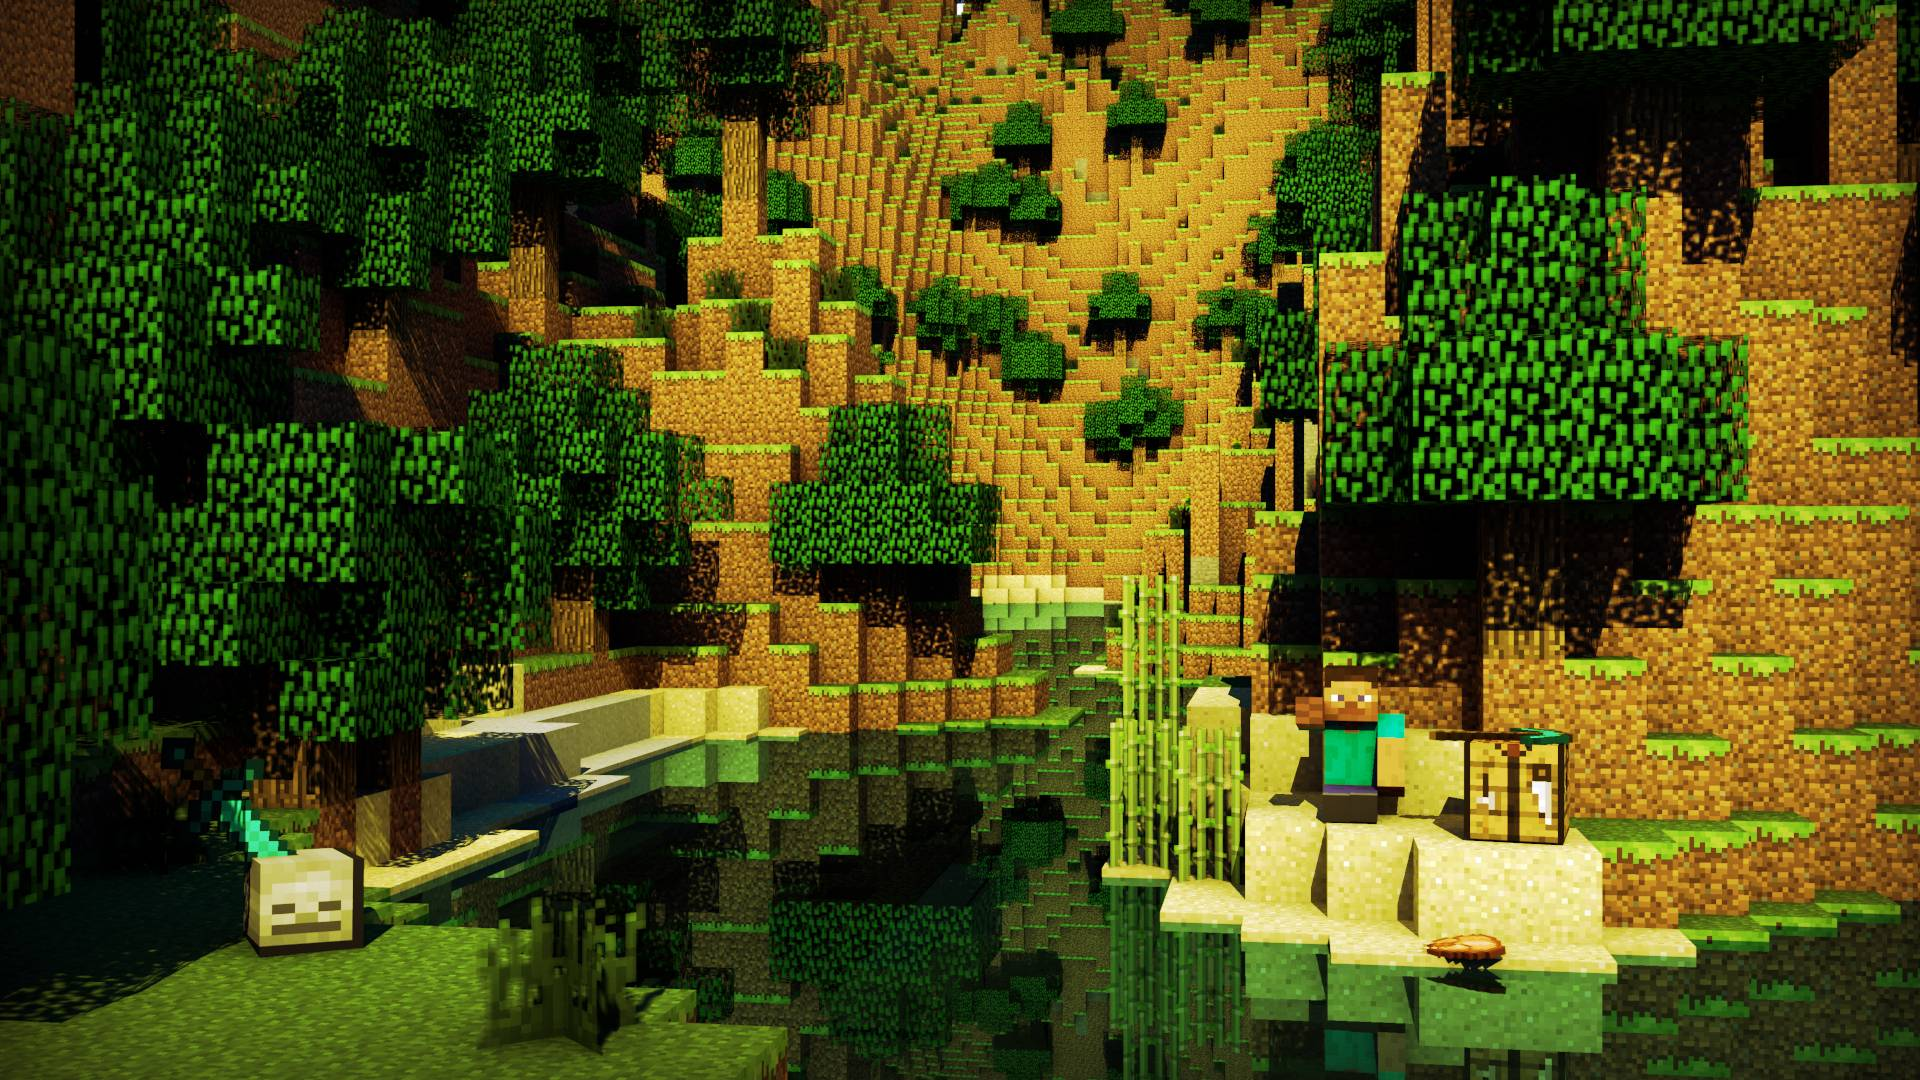 Best Minecraft Backgrounds - Wallpaper Cave